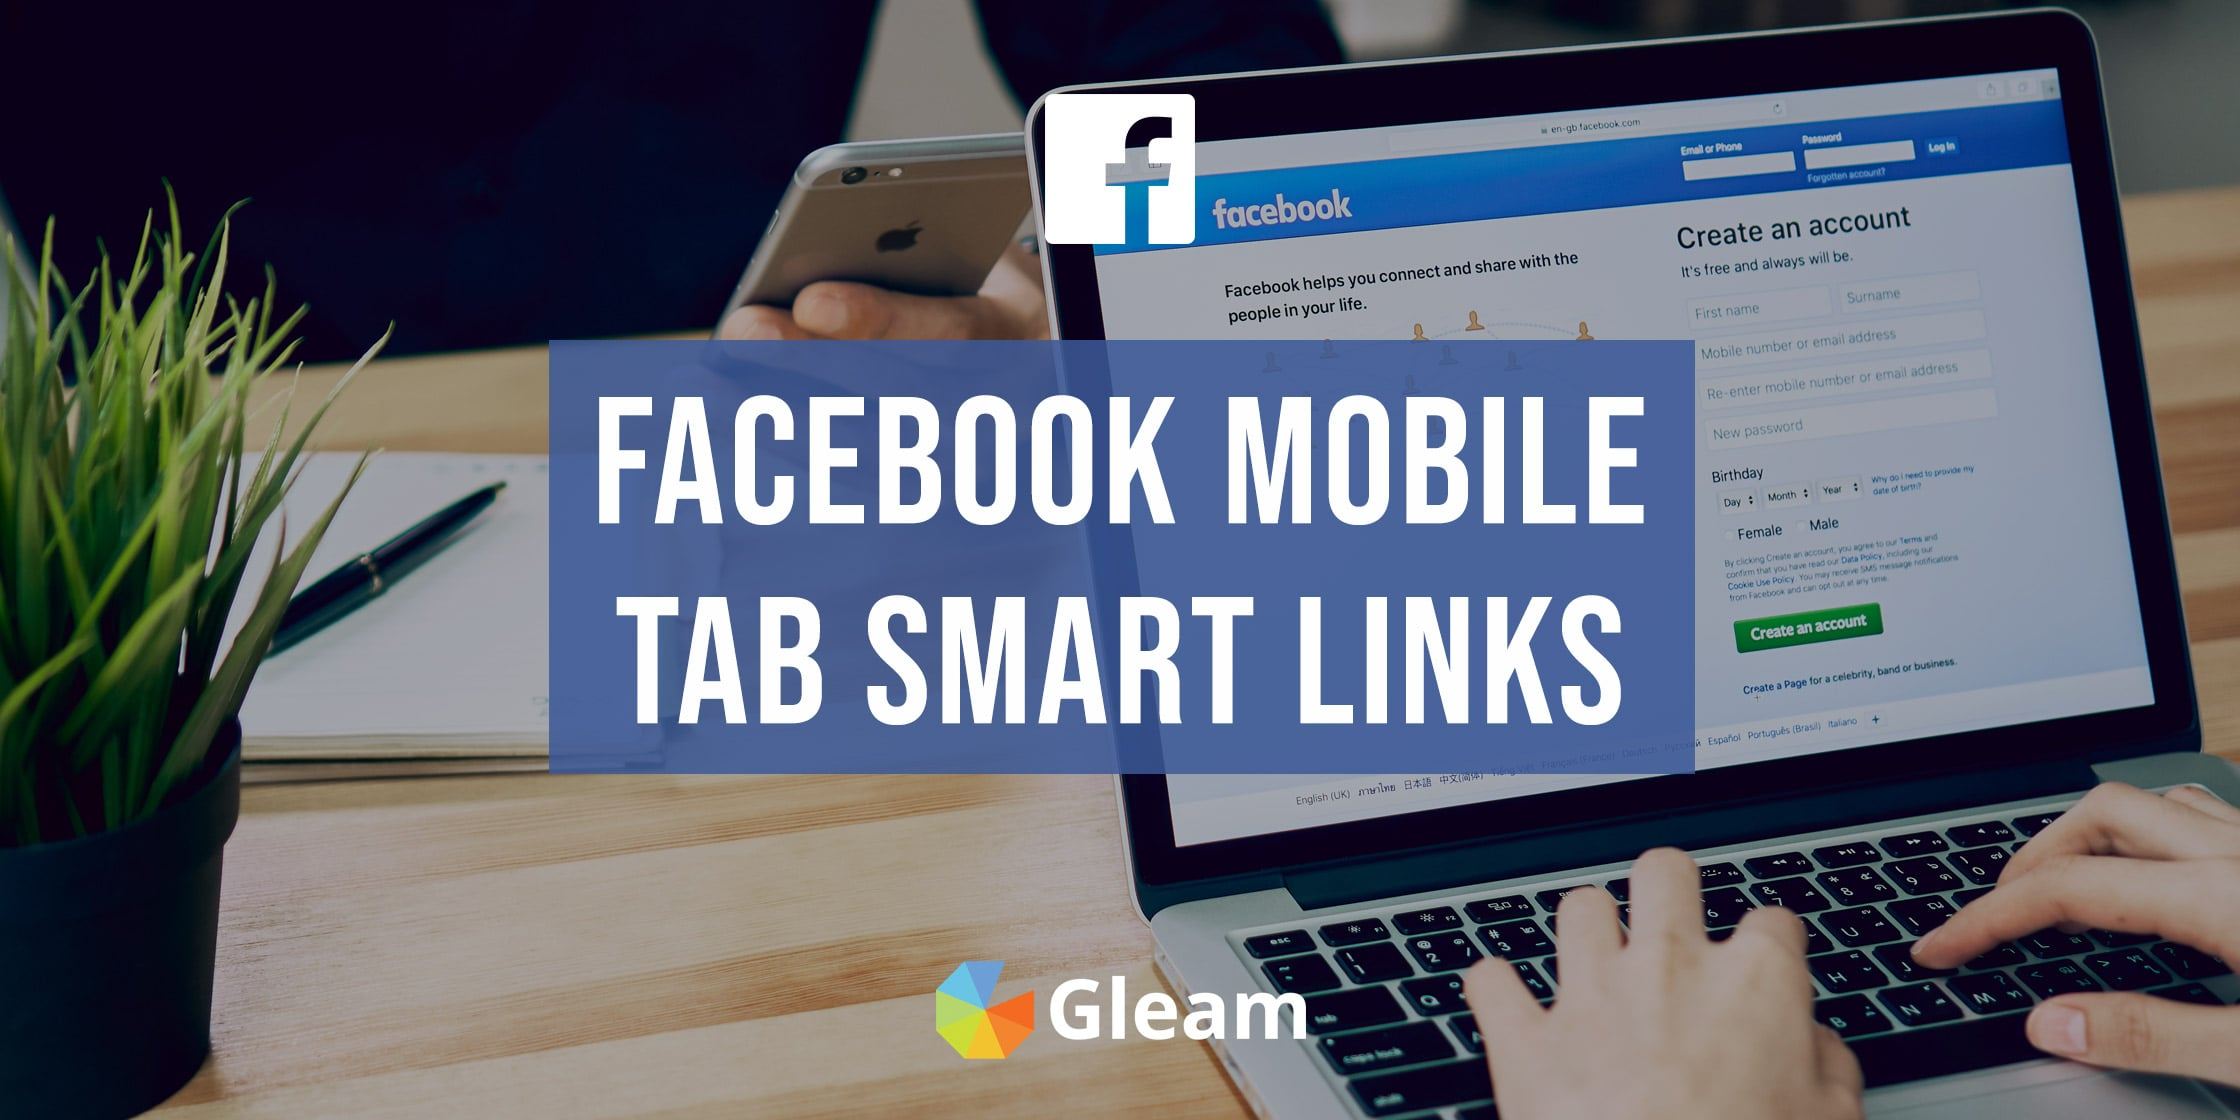 Introducing Facebook Mobile Tab Smart Links